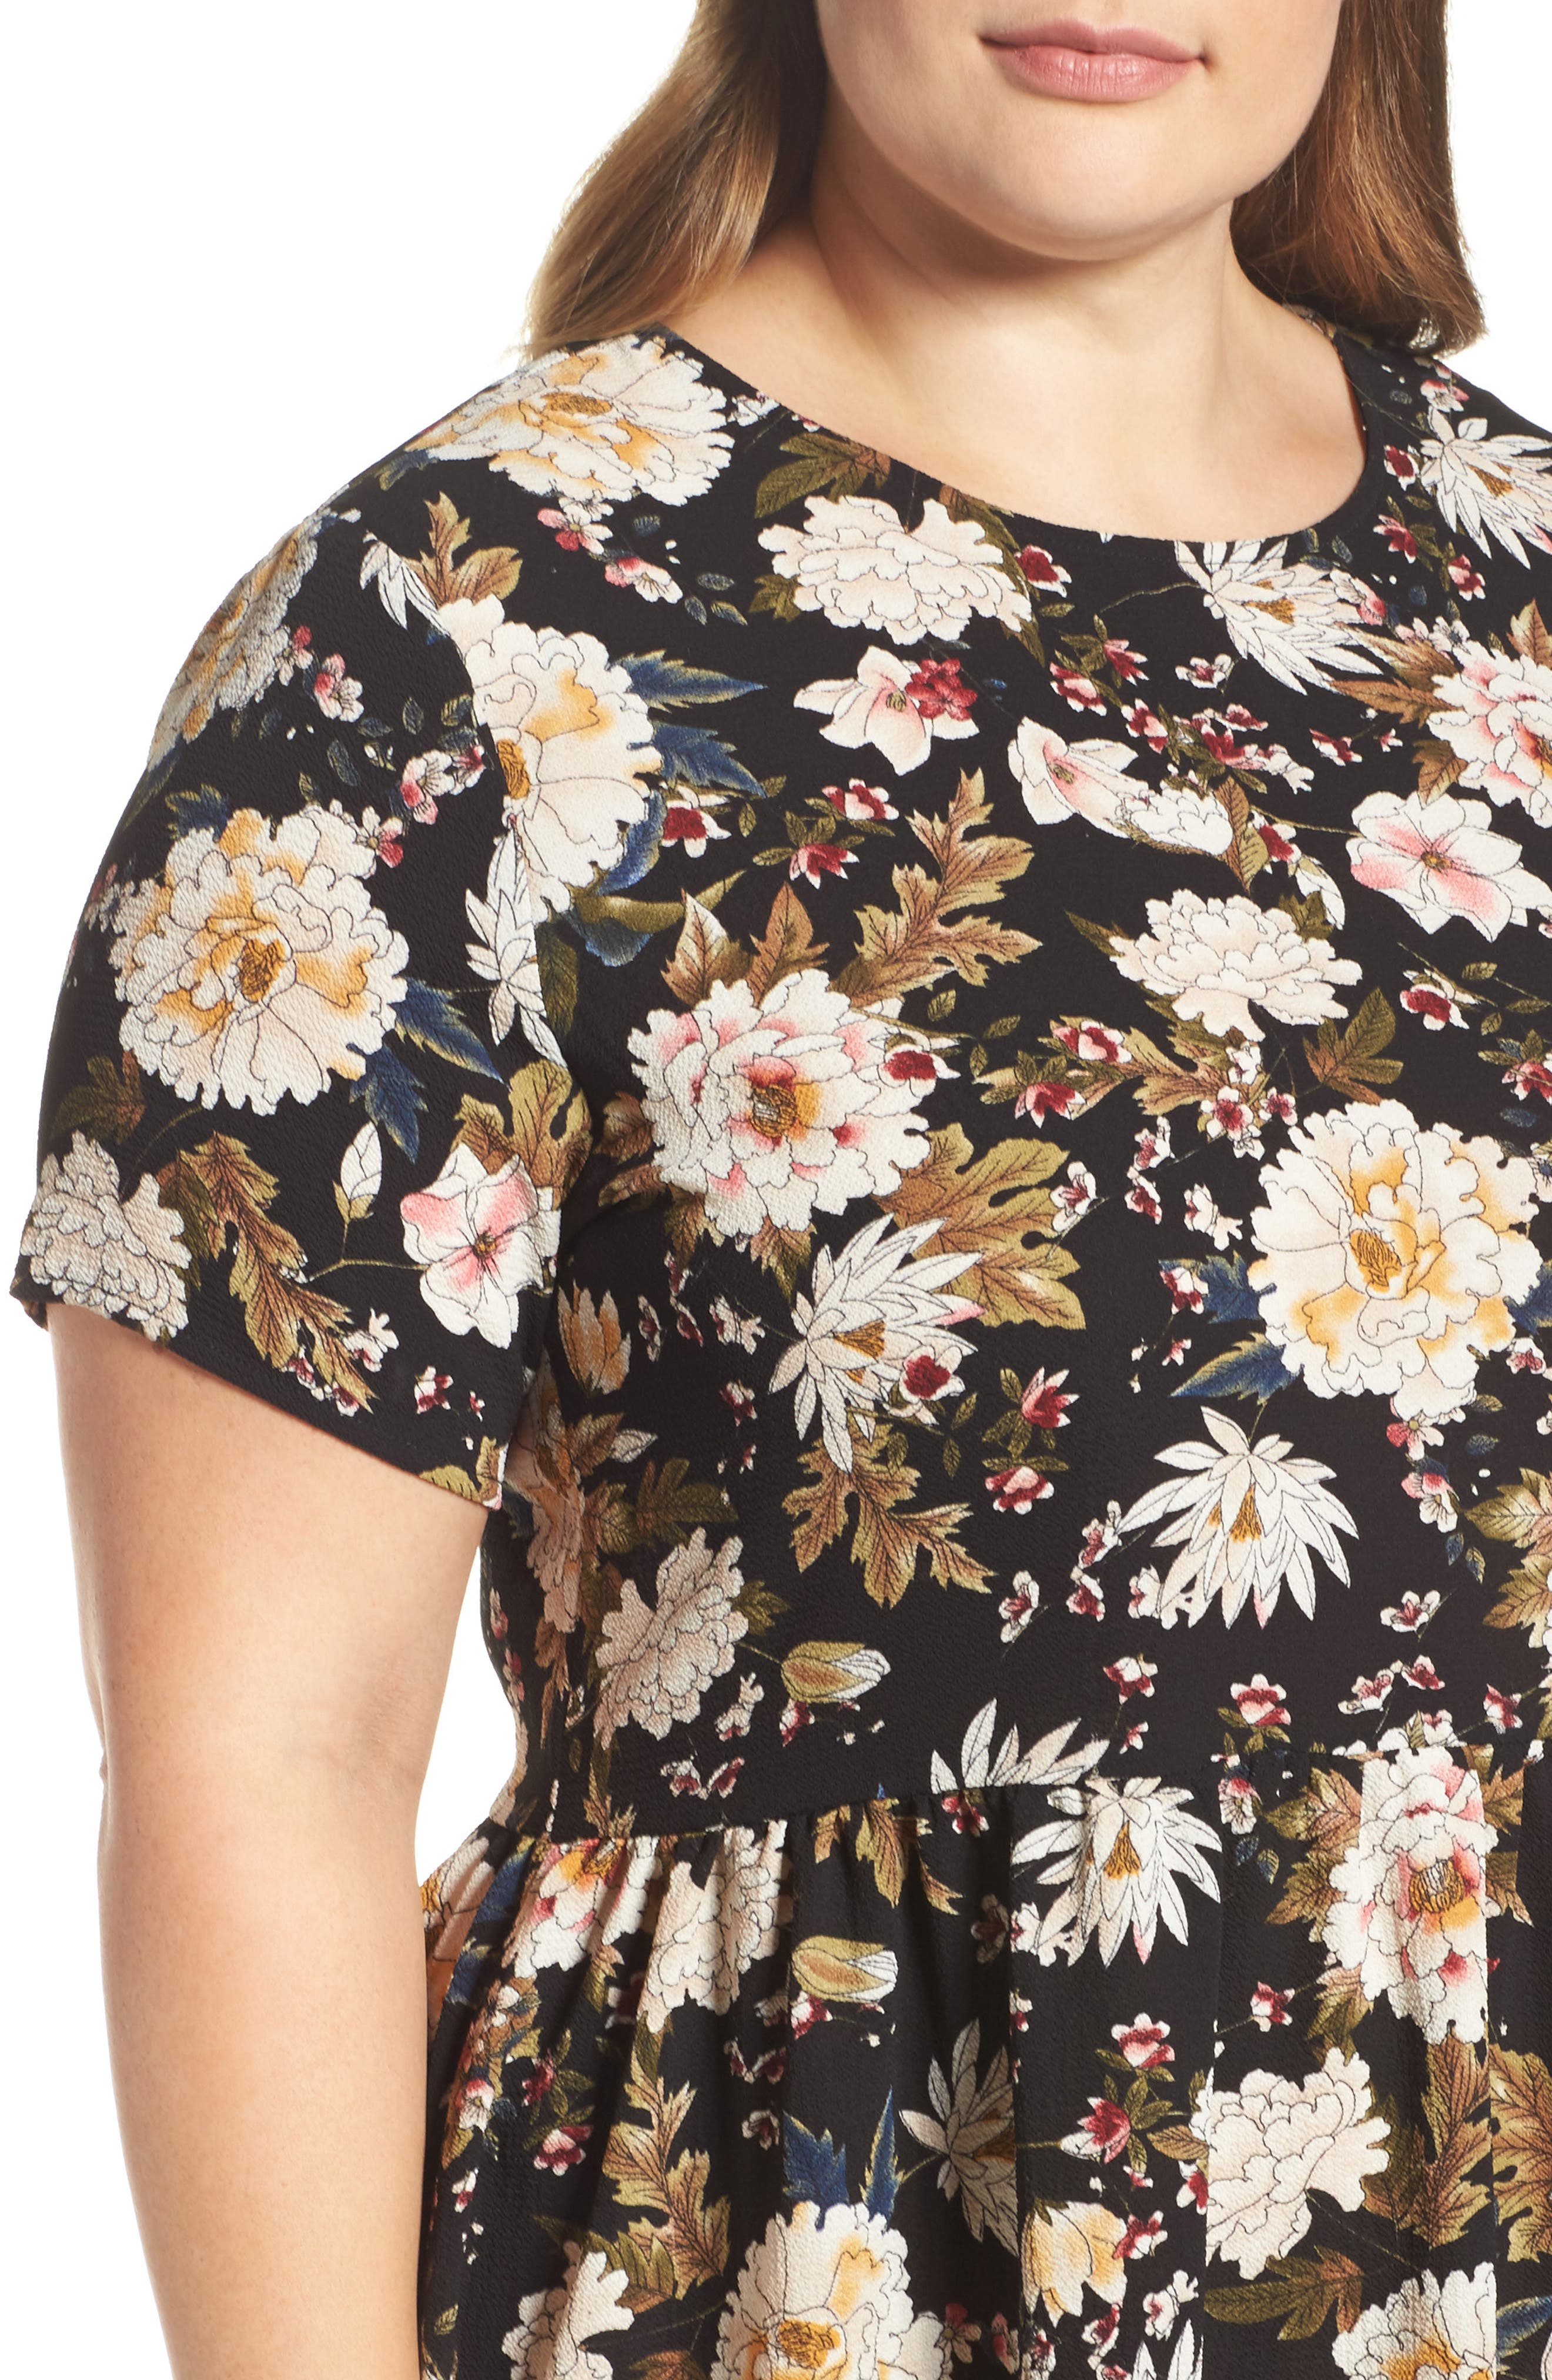 Empire Waist Floral Print Dress,                             Alternate thumbnail 4, color,                             009